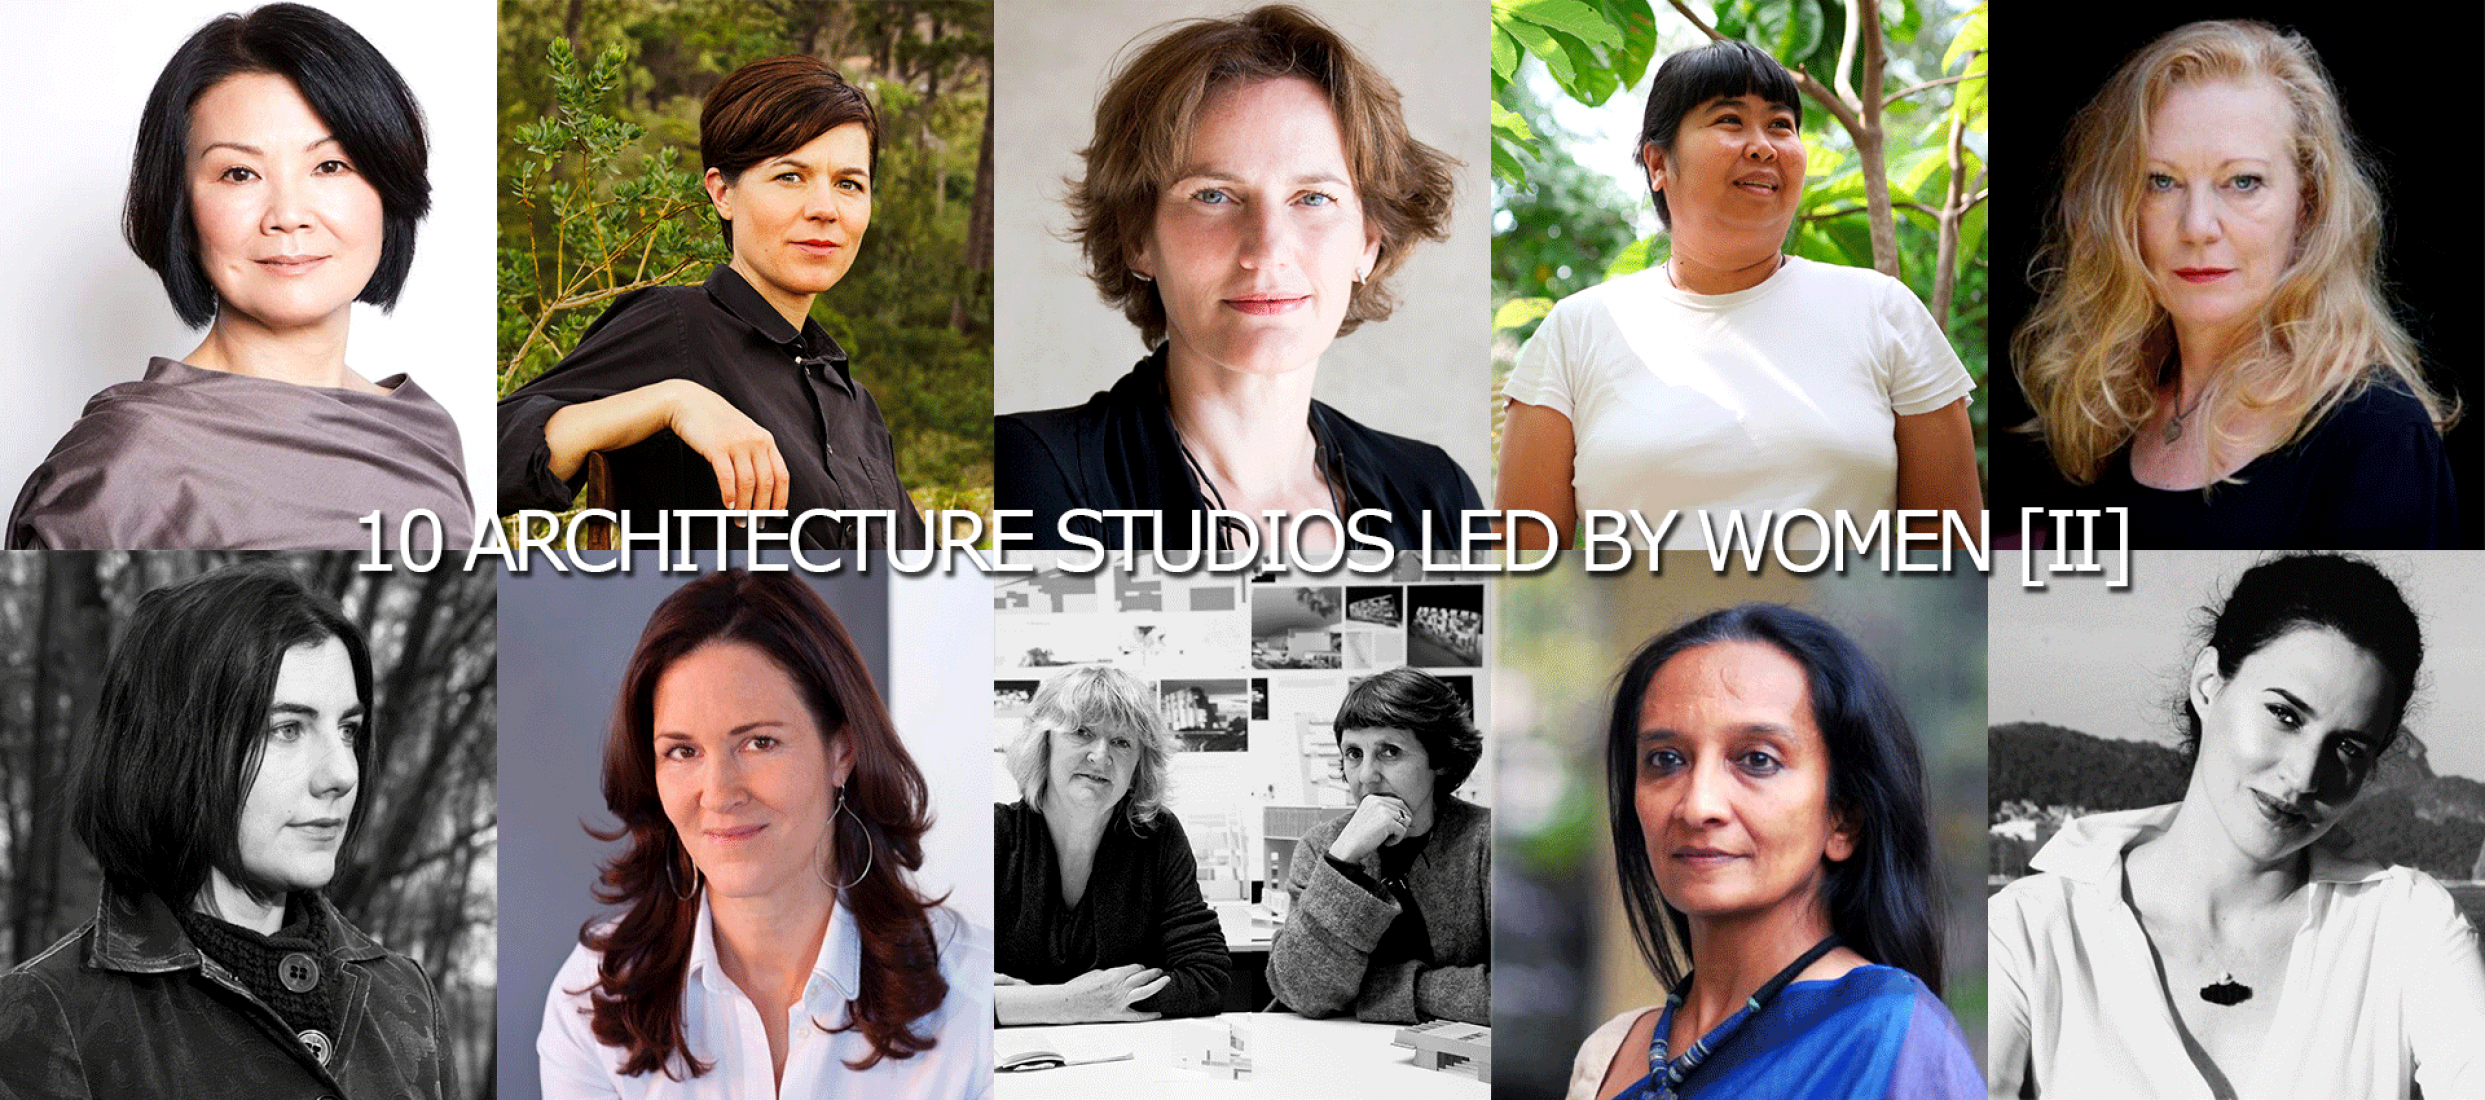 10 Architecture Studios Led by Women [II]